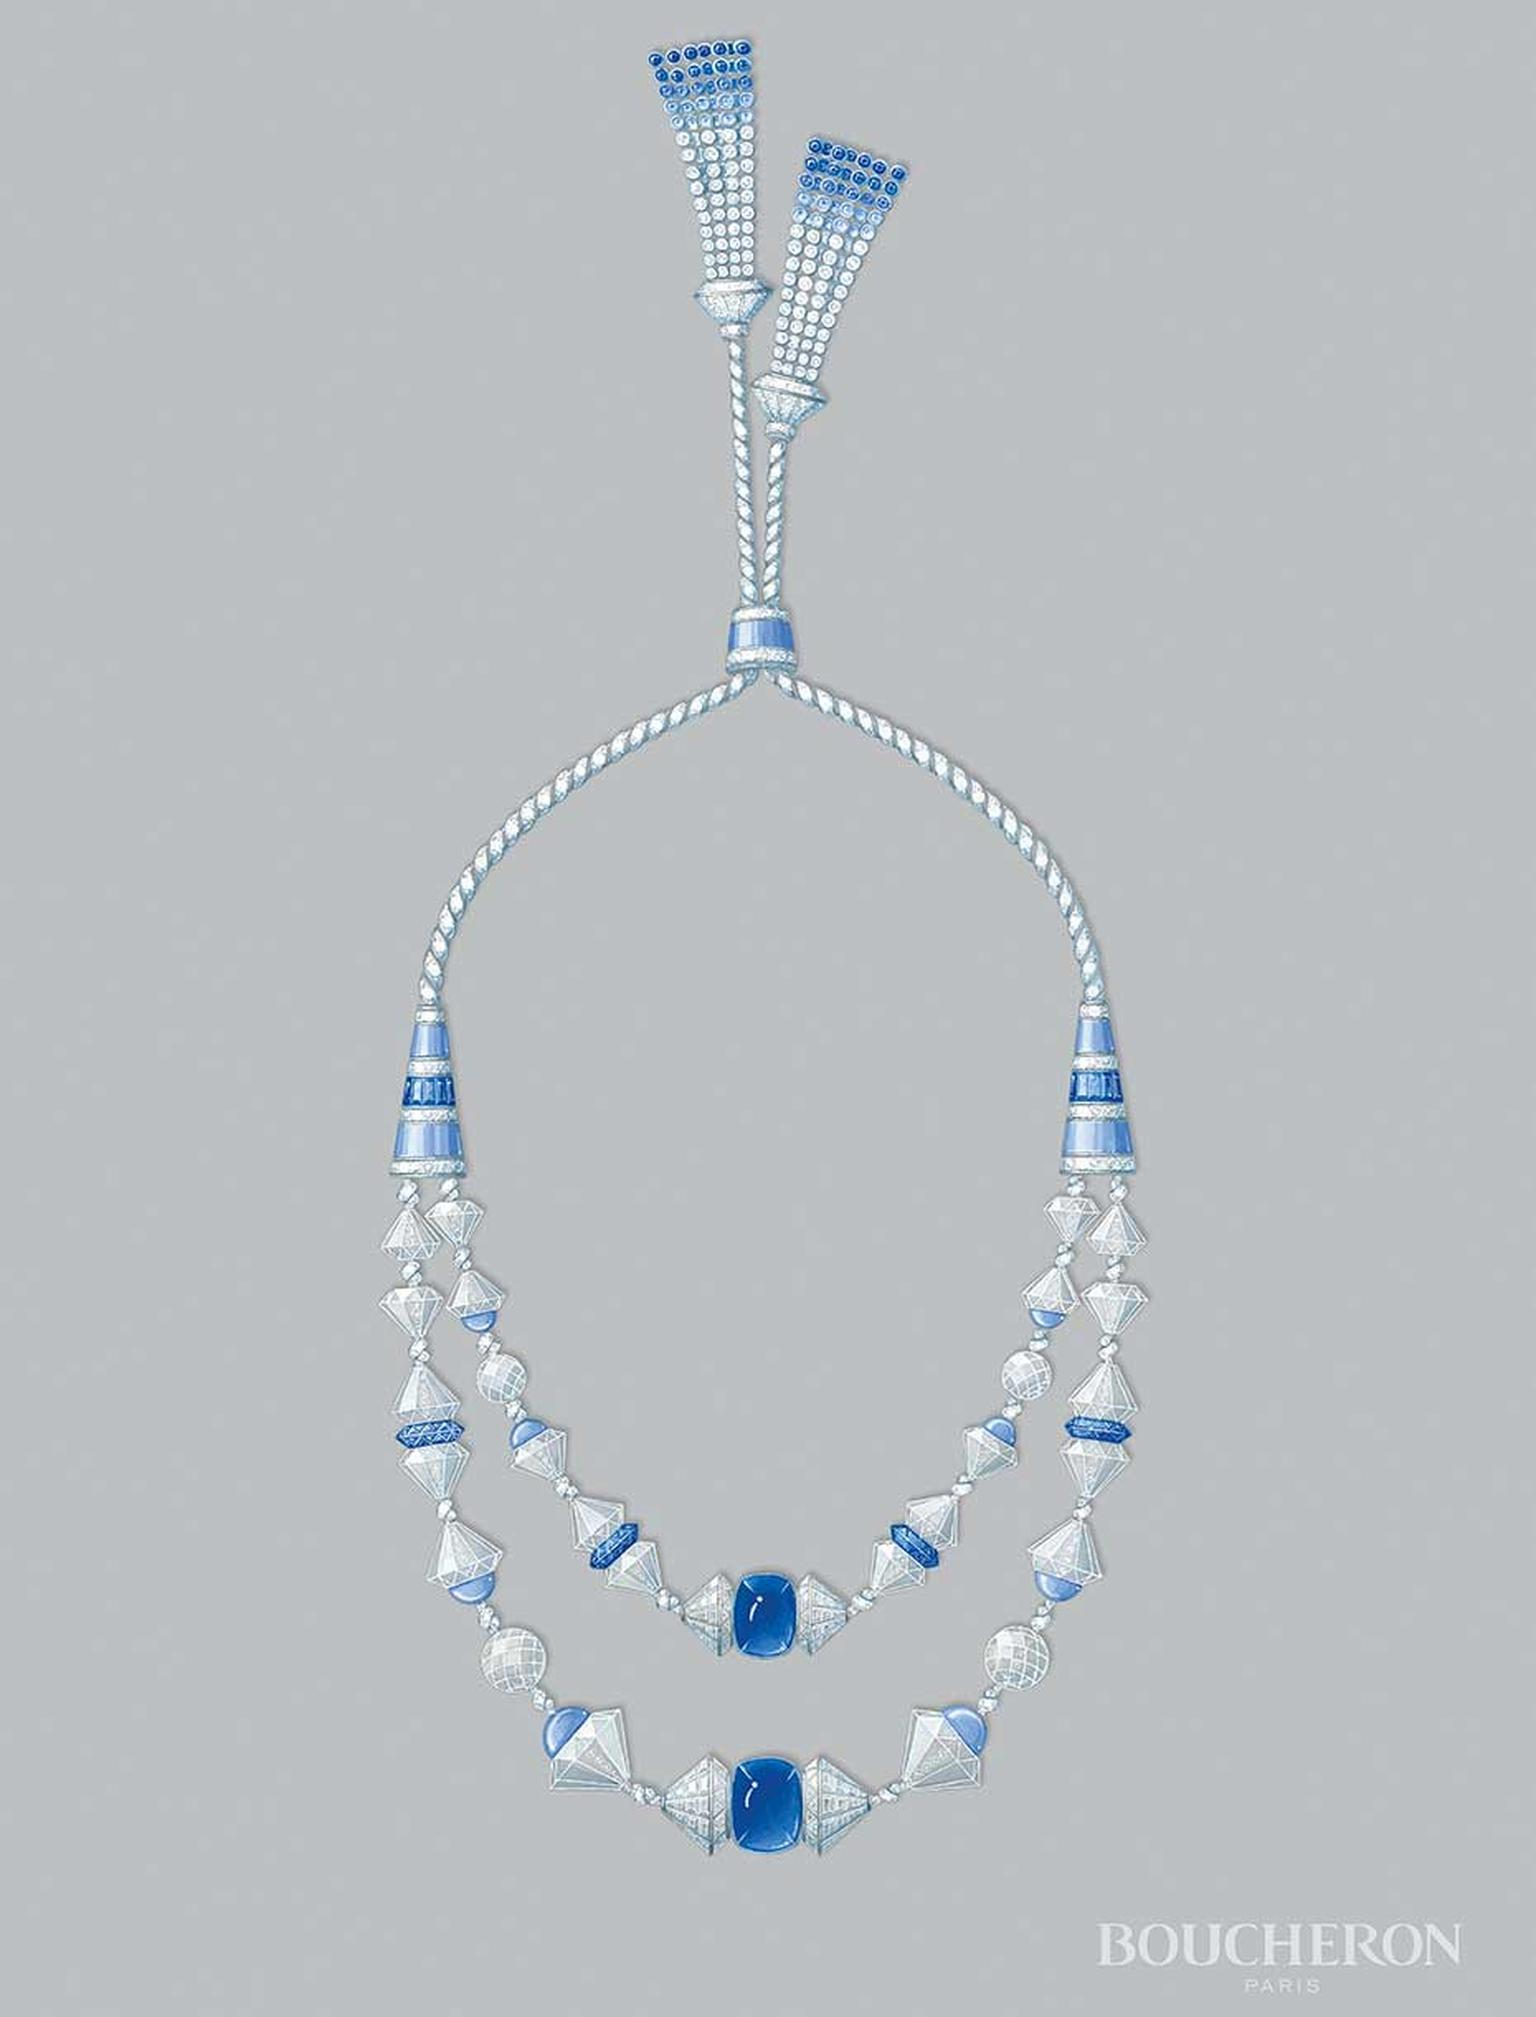 A sketch of Boucheron's Tresor de Perse necklace, part of the Reves d'Ailleurs high jewellery collection that will go on display at the Biennale des Antiquaires 2014